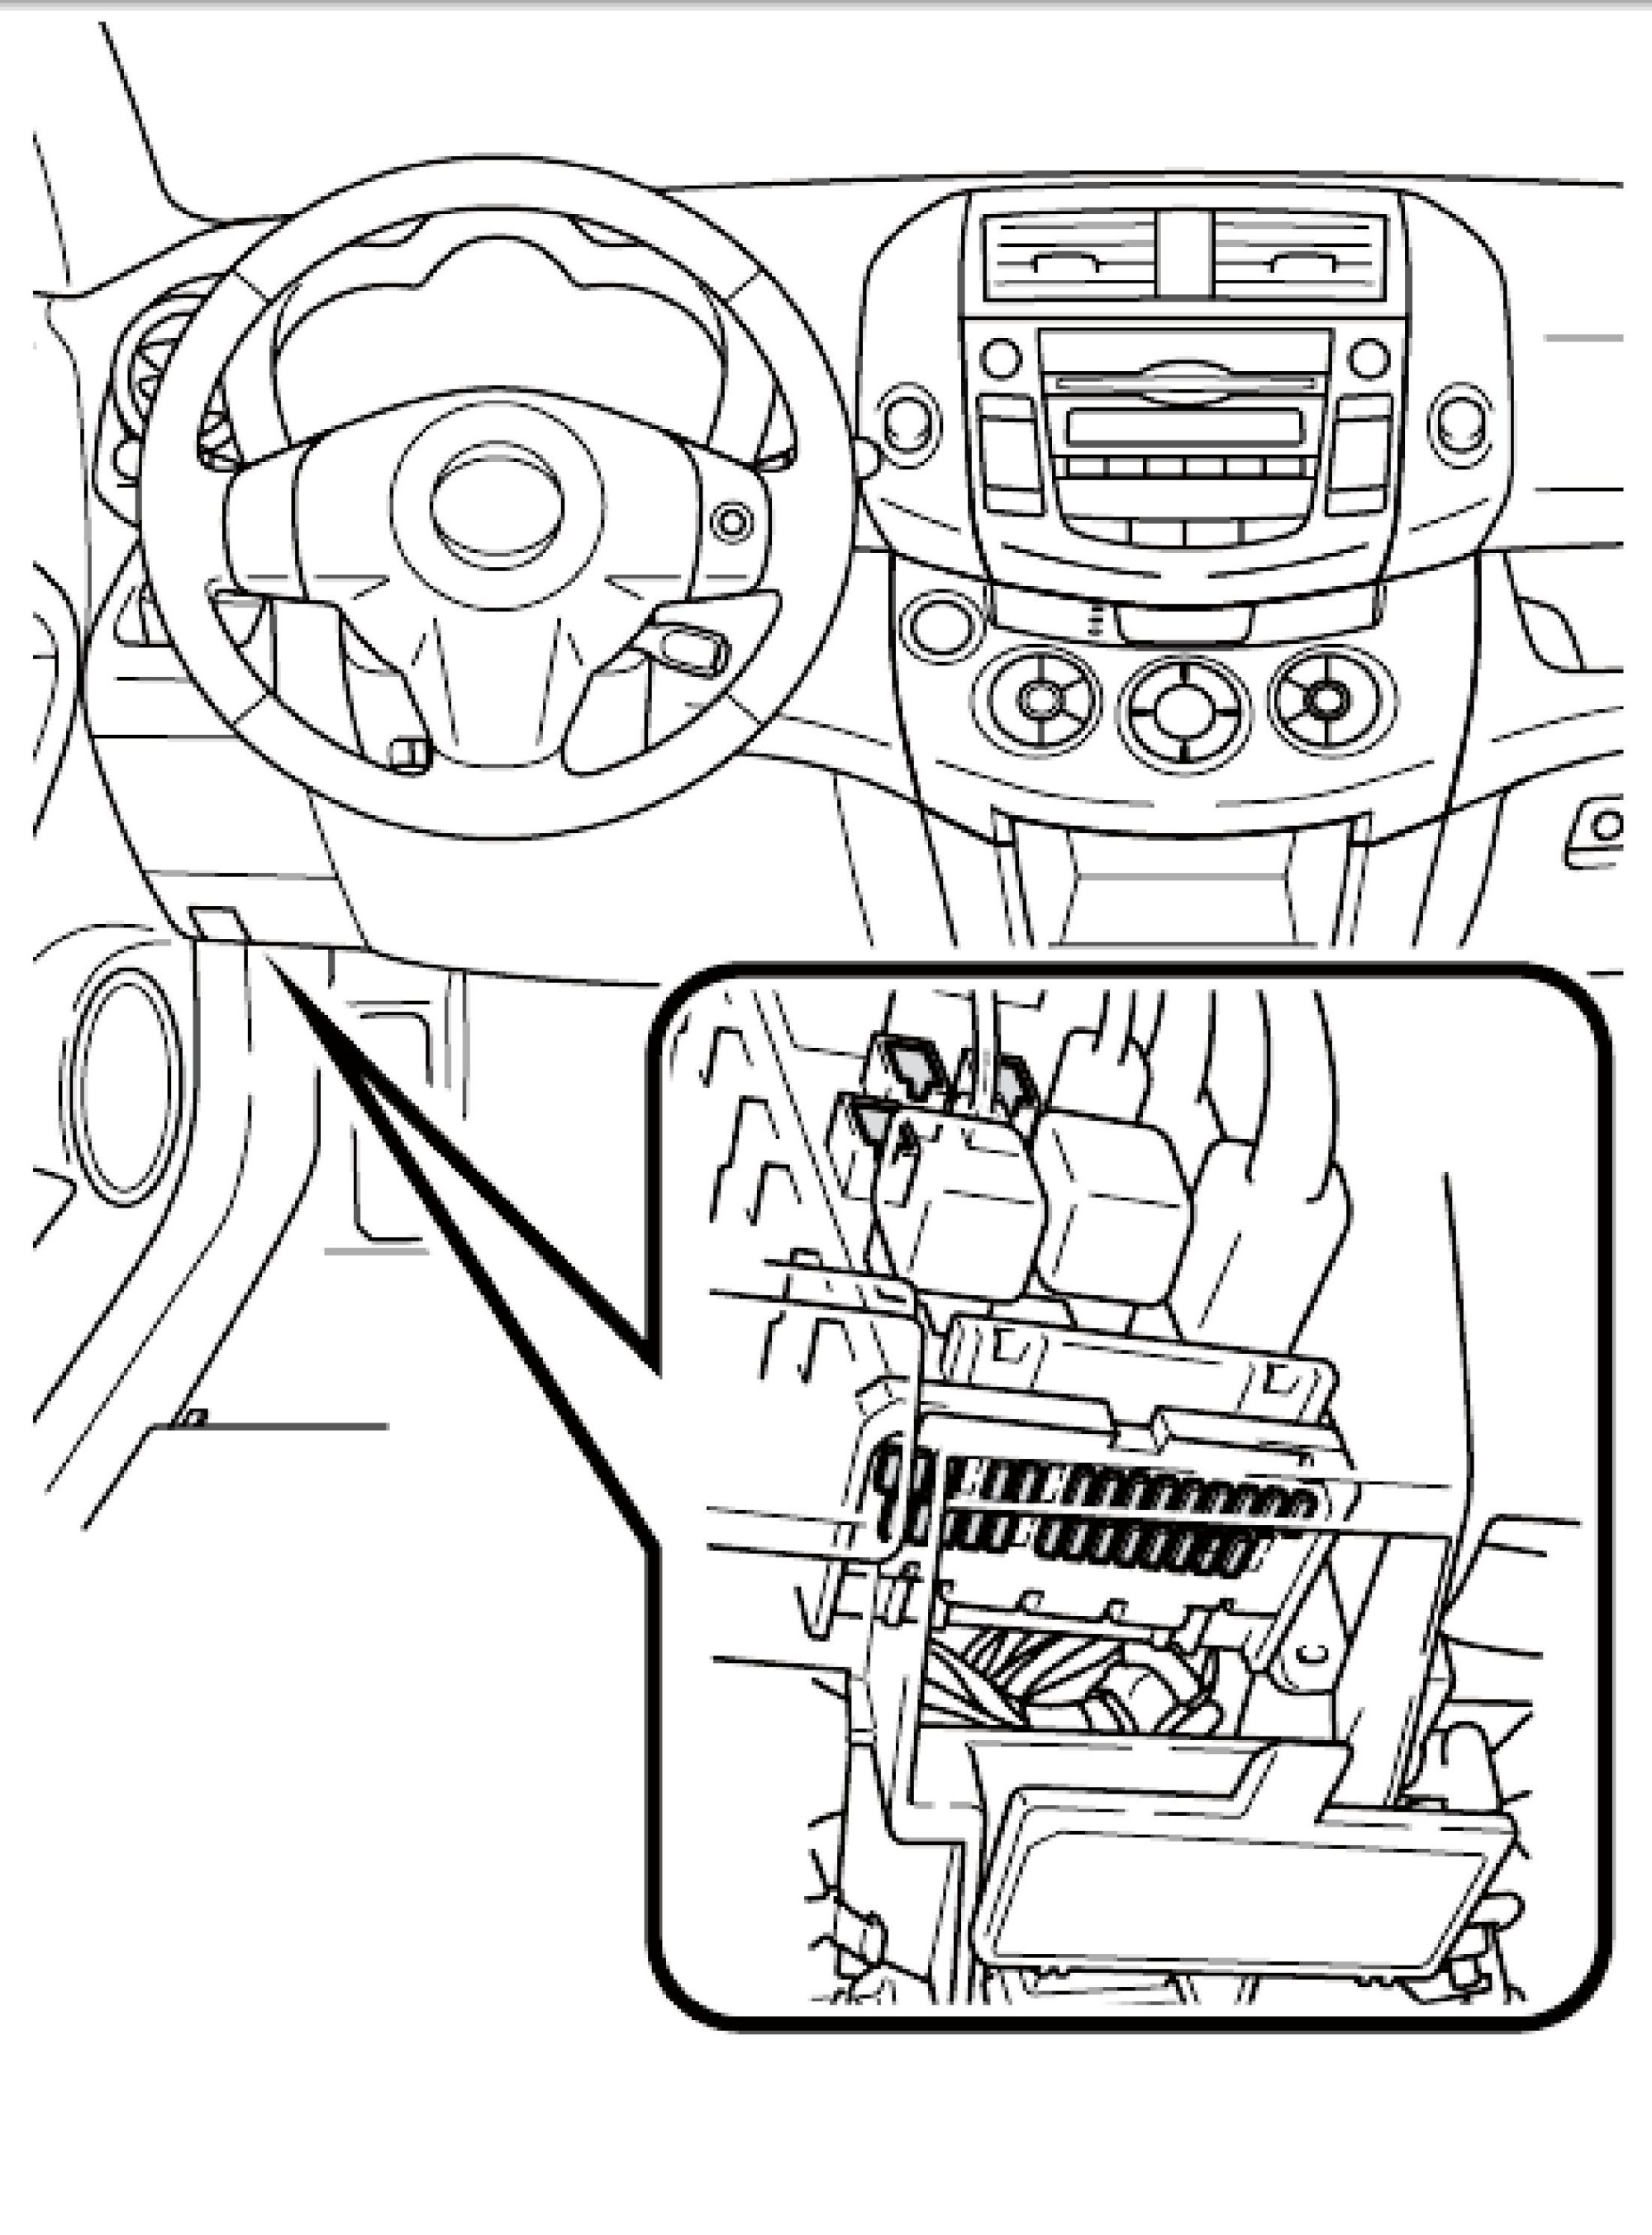 hight resolution of 1996 oldsmobile 88 fuse box location 15 10 fearless wonder de u2022oldsmobile 88 fuse box